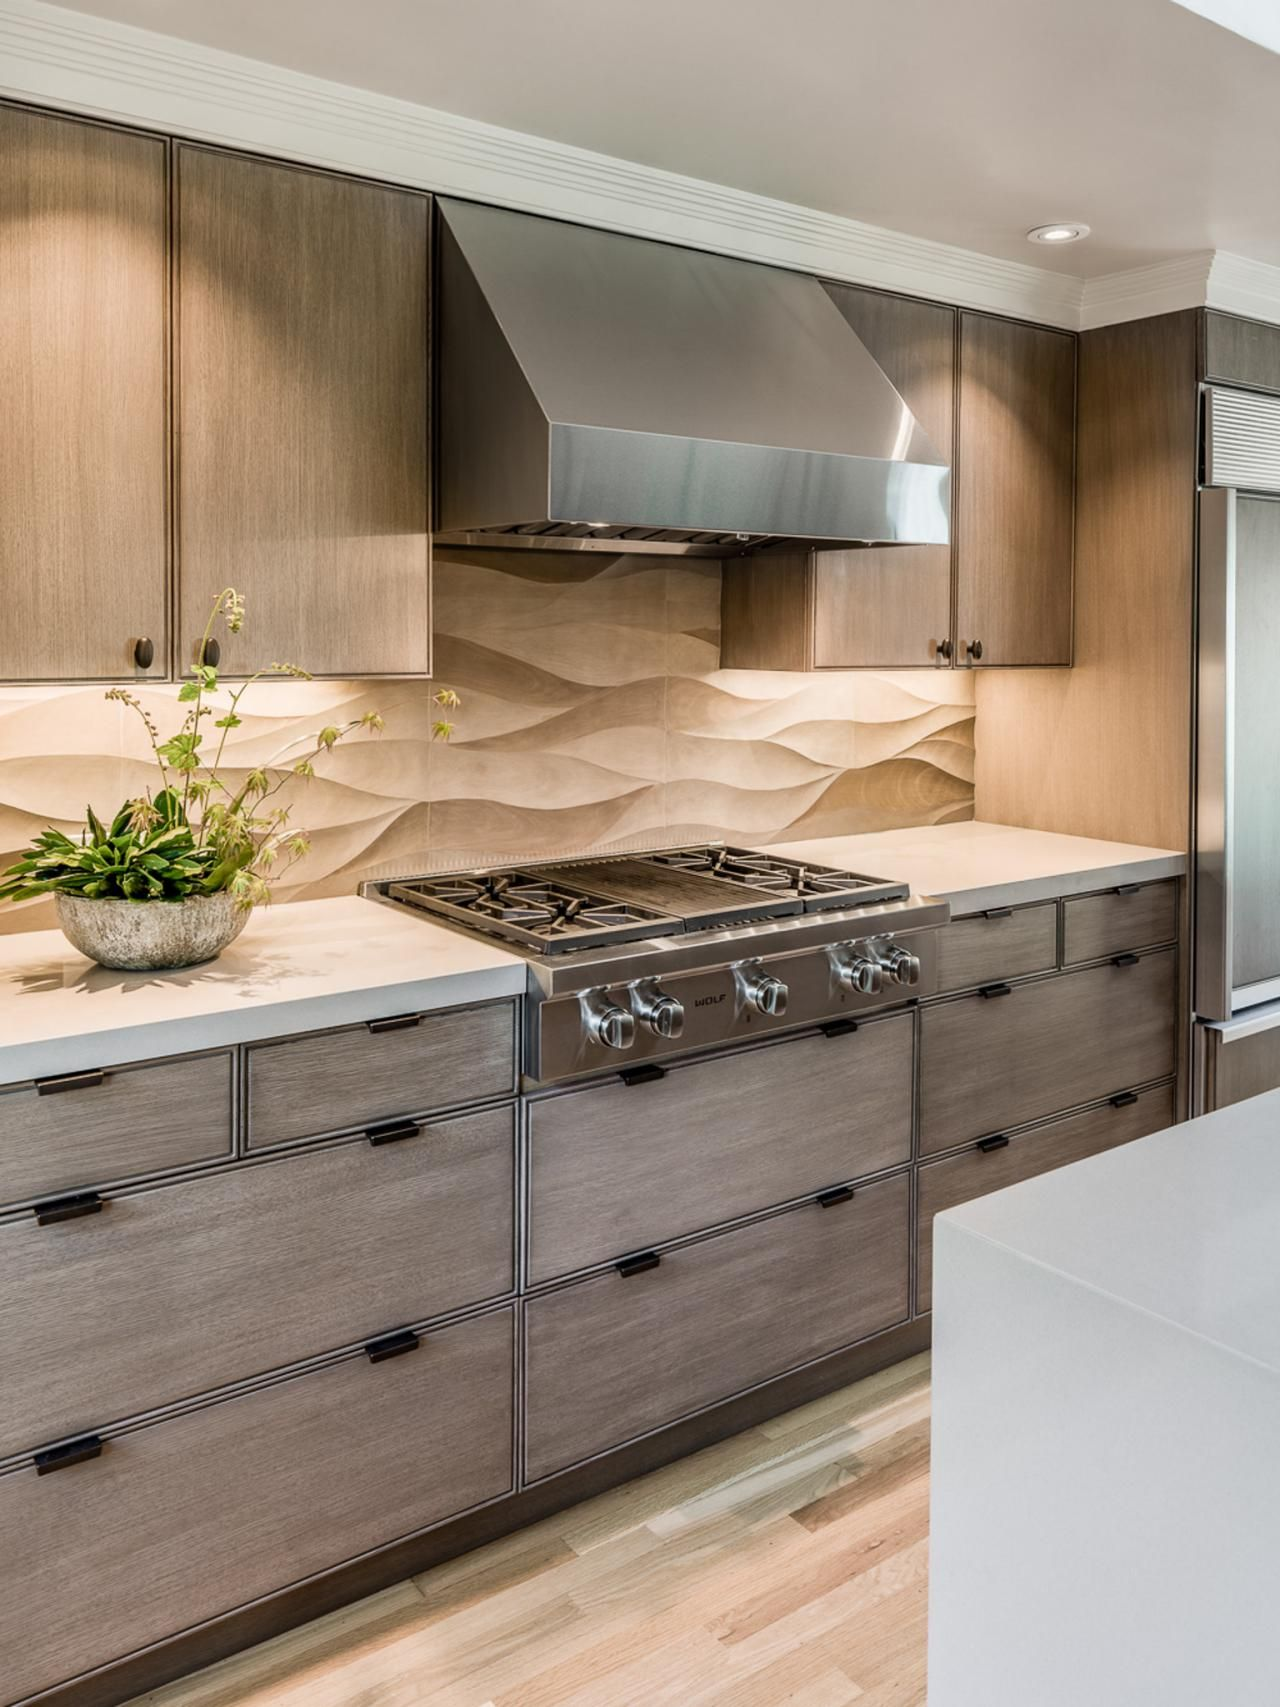 - A Neutral Limestone Backsplash Contrasts With The Straight Lines